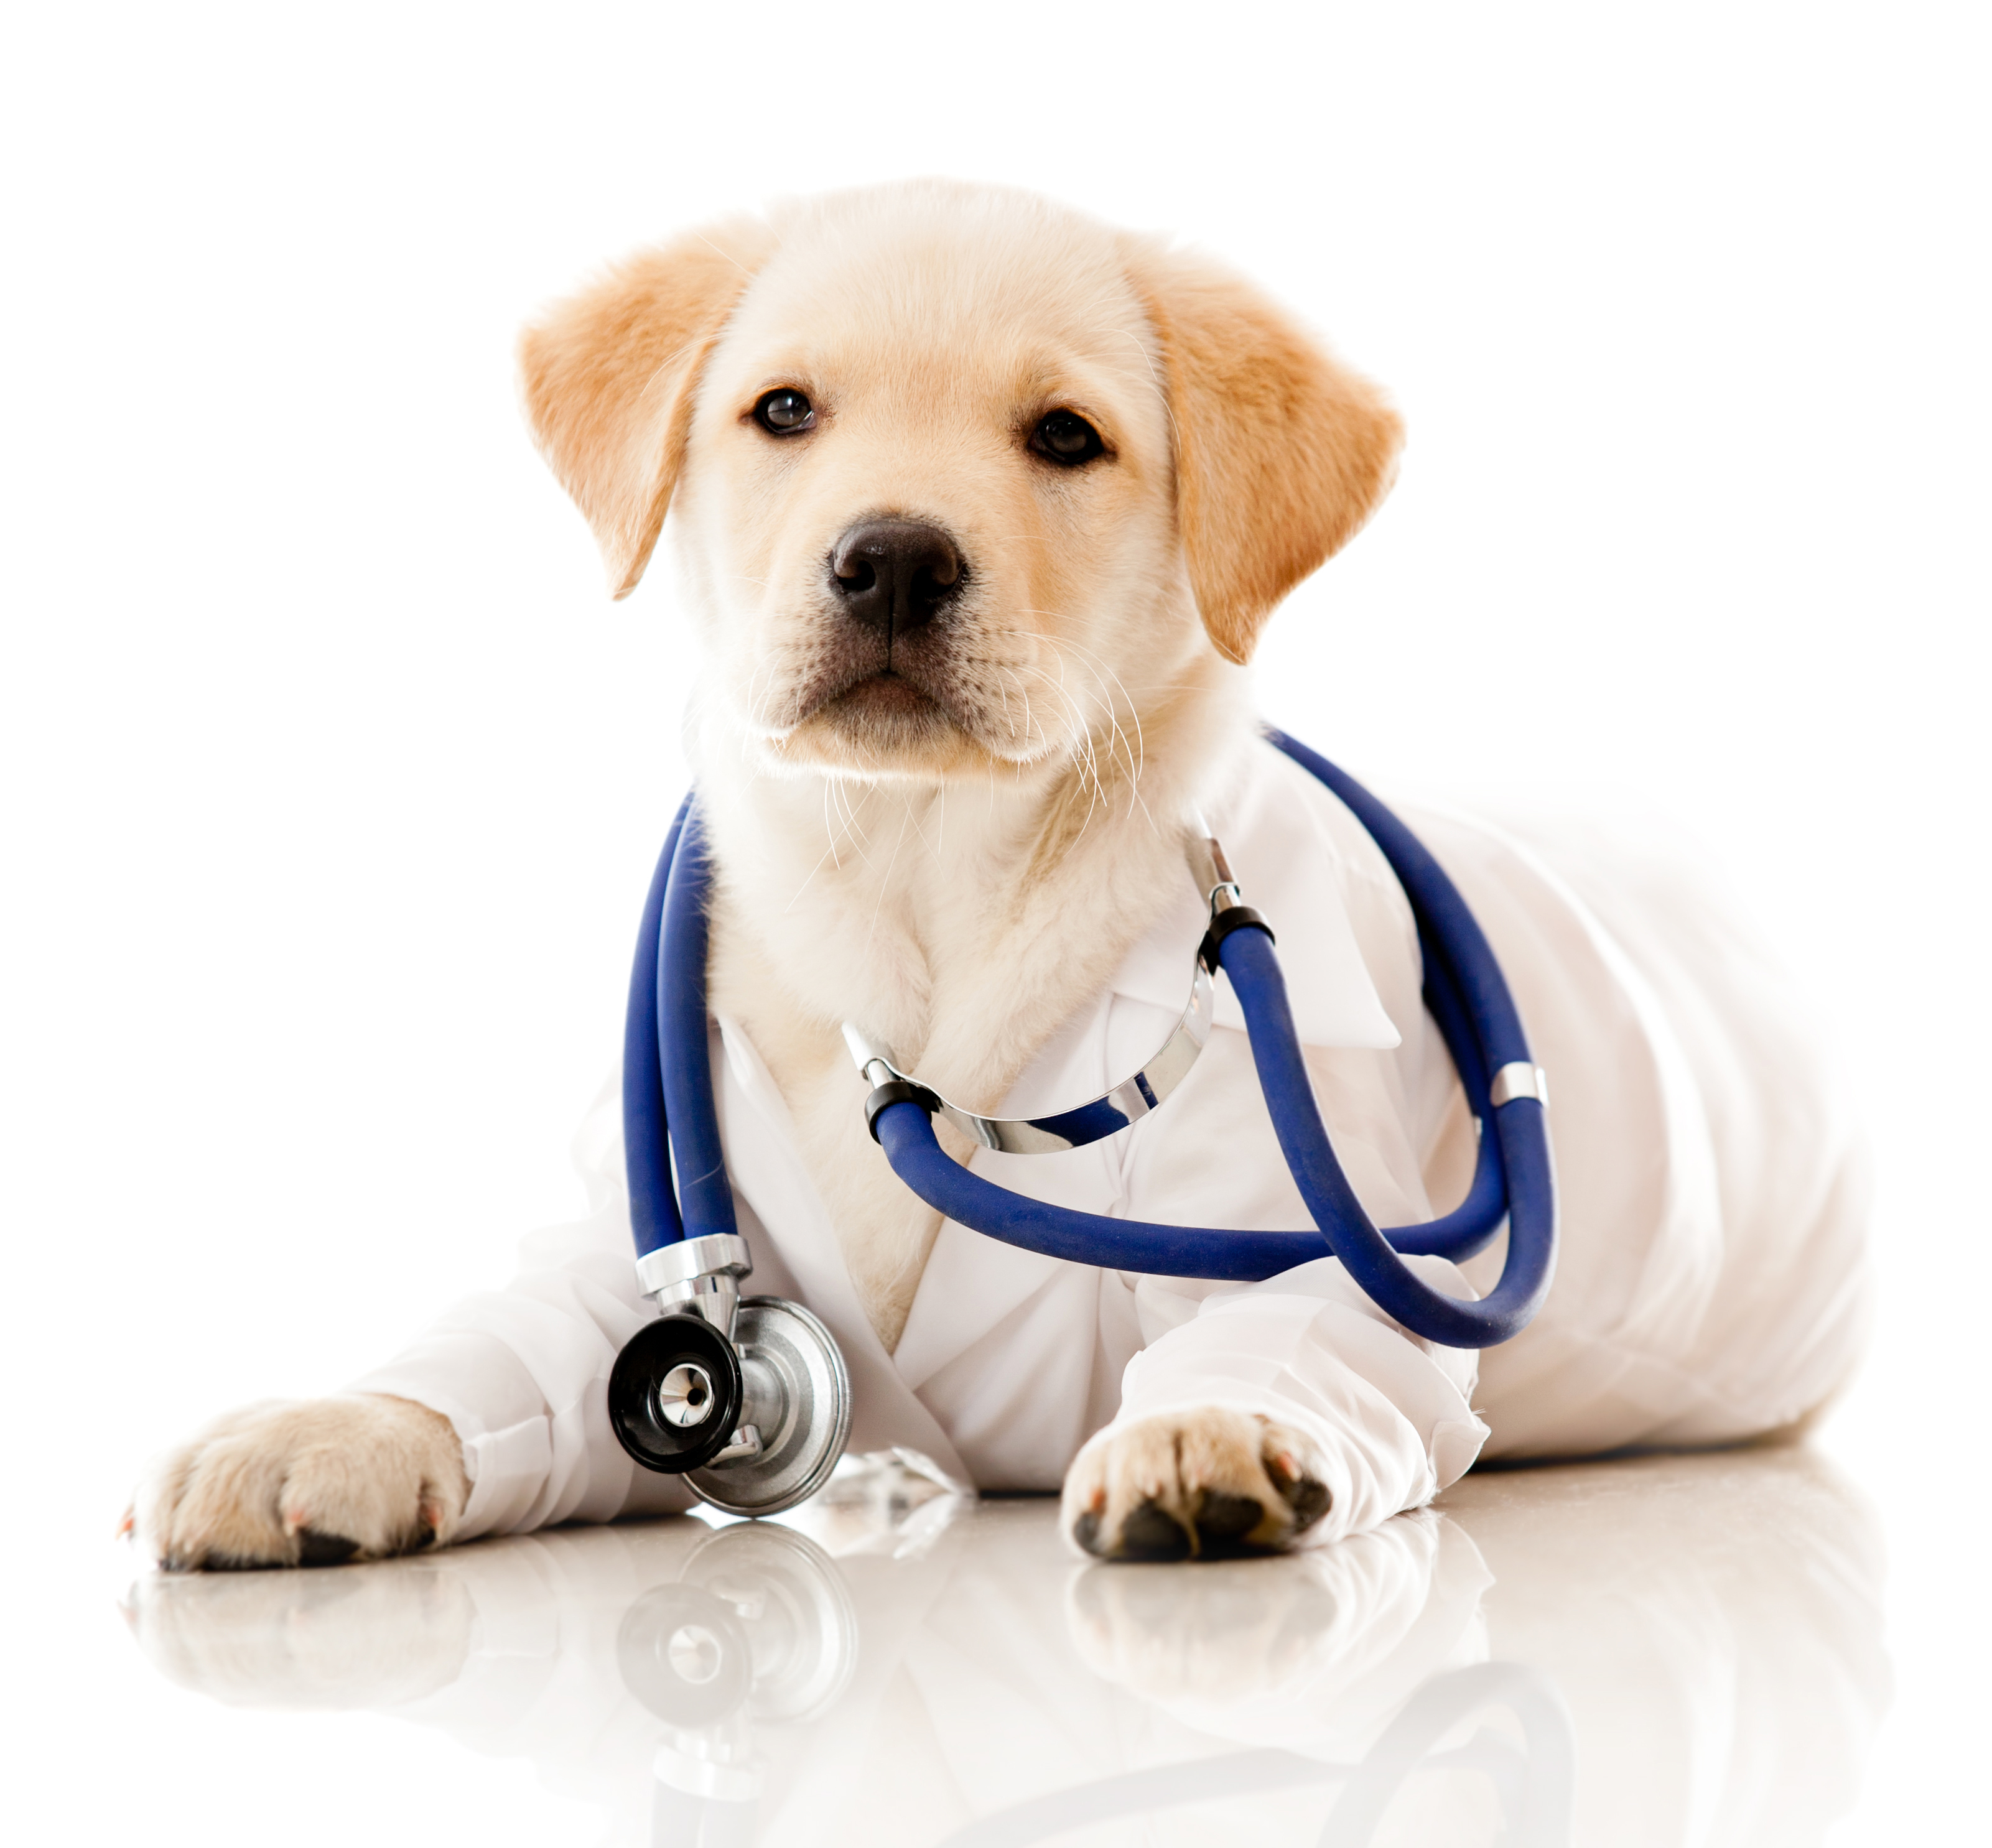 Little dog as a vet wearing robe and stethoscope - isolated over a whi